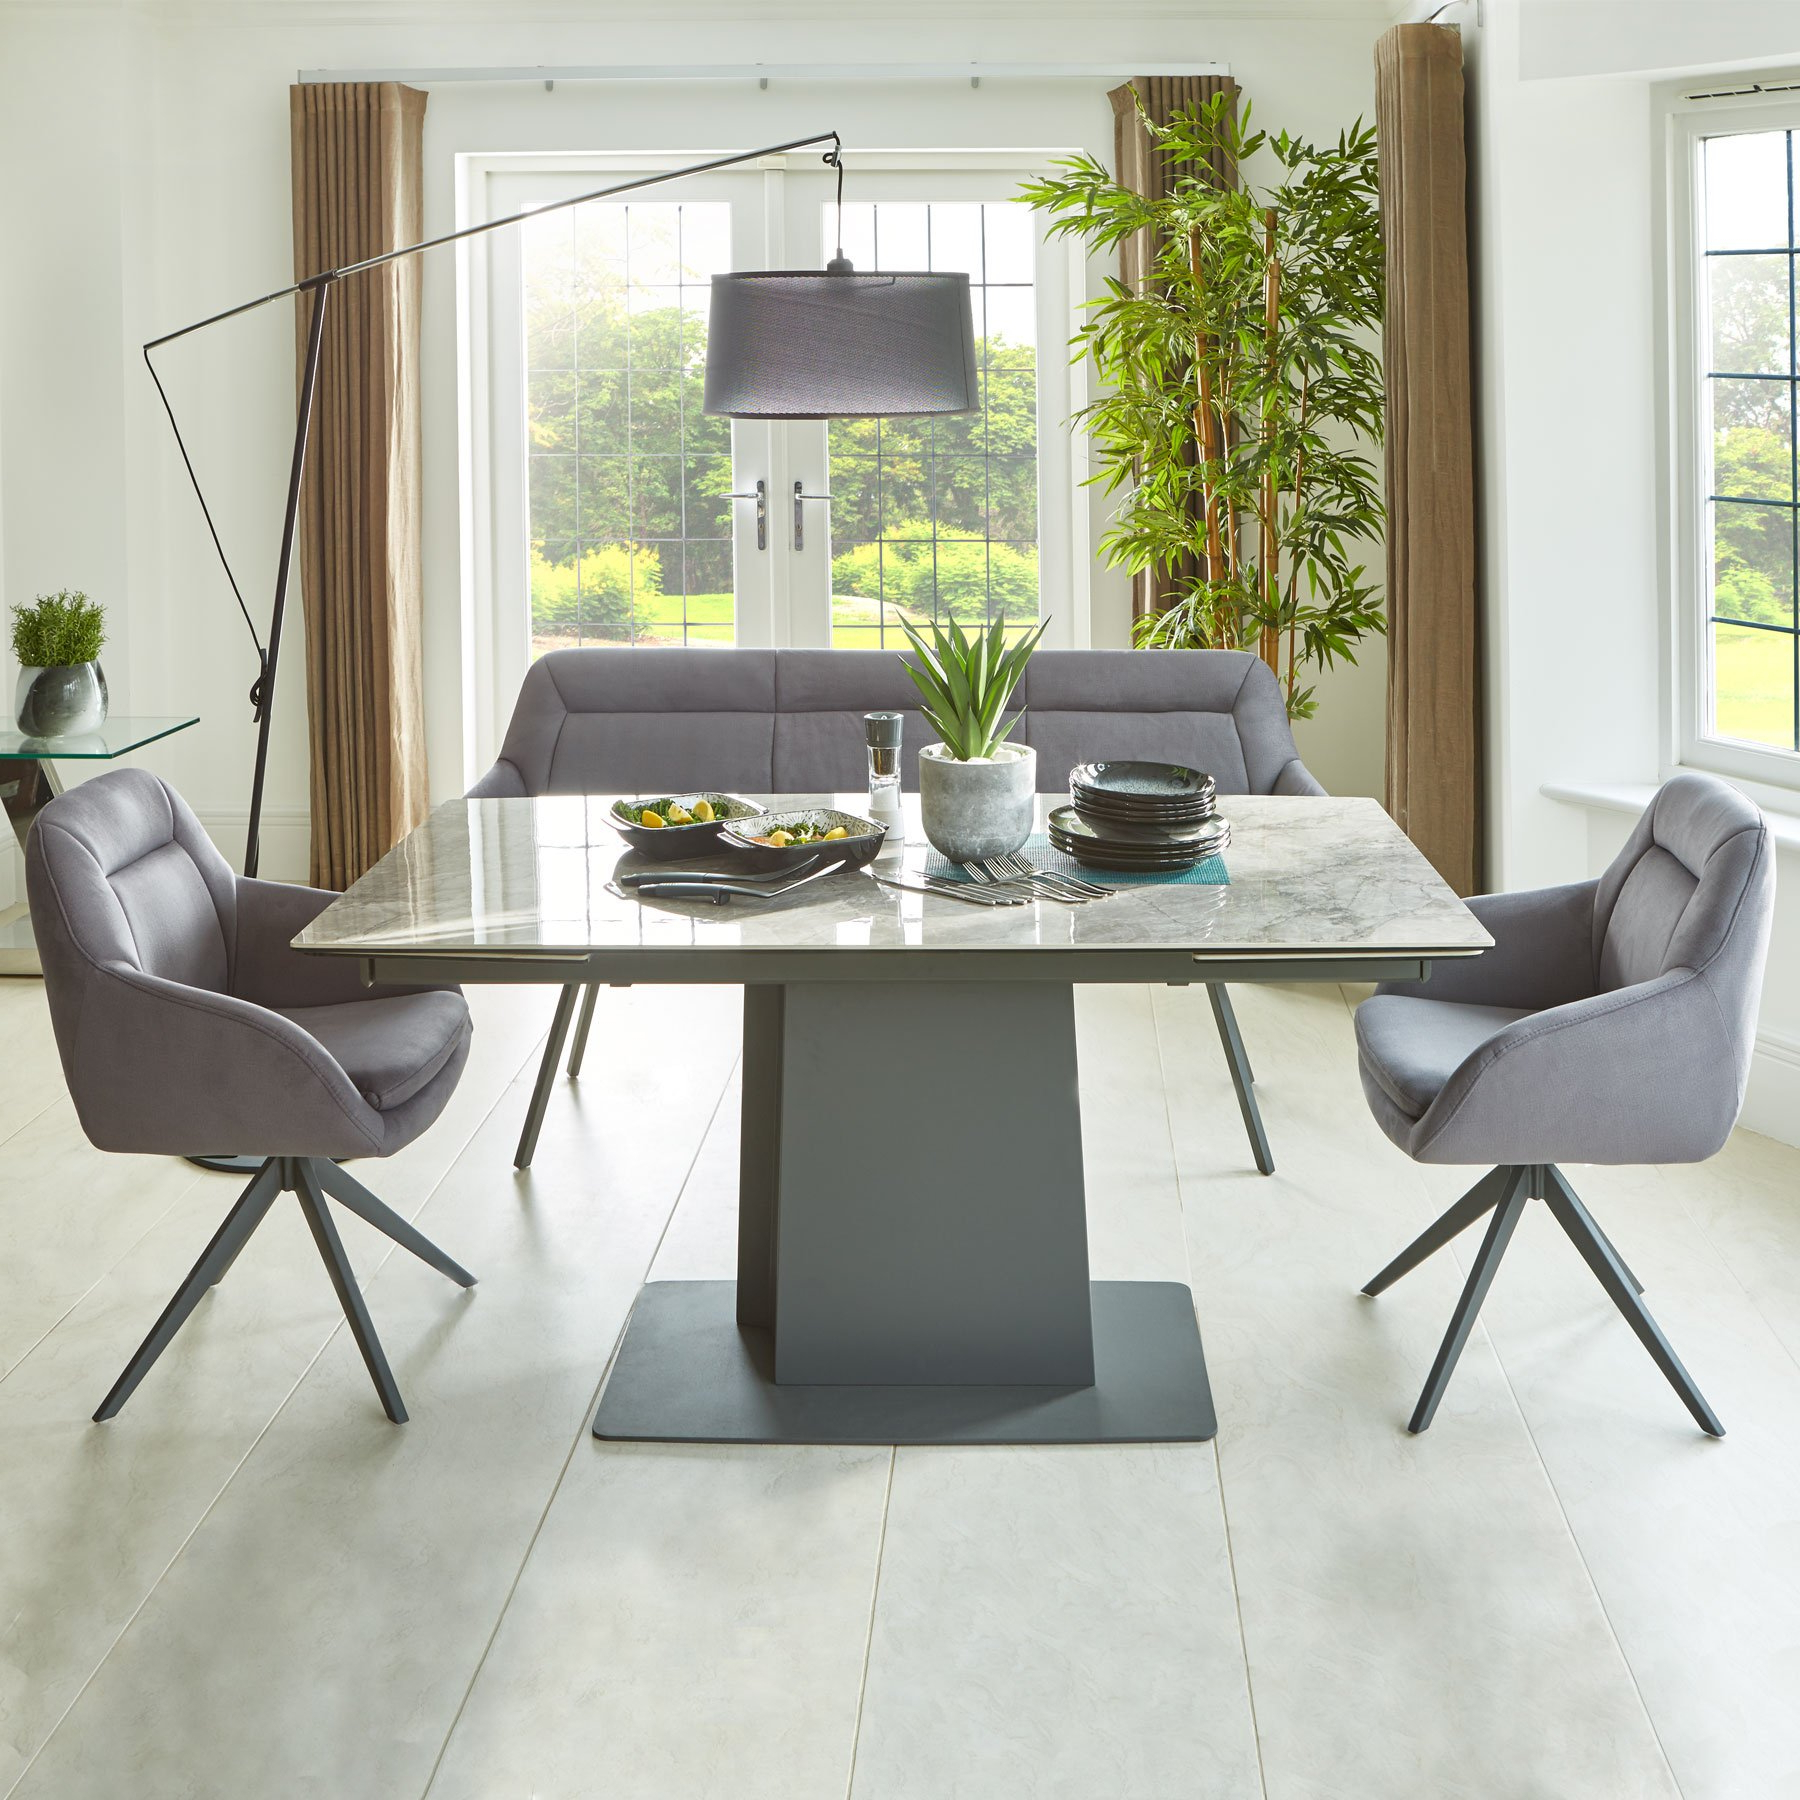 2019 Alfresco Brown Banks Pedestal Extending Dining Tables Regarding Ideas About Extending Dining Bench, – Howellmagic Dining (View 21 of 25)